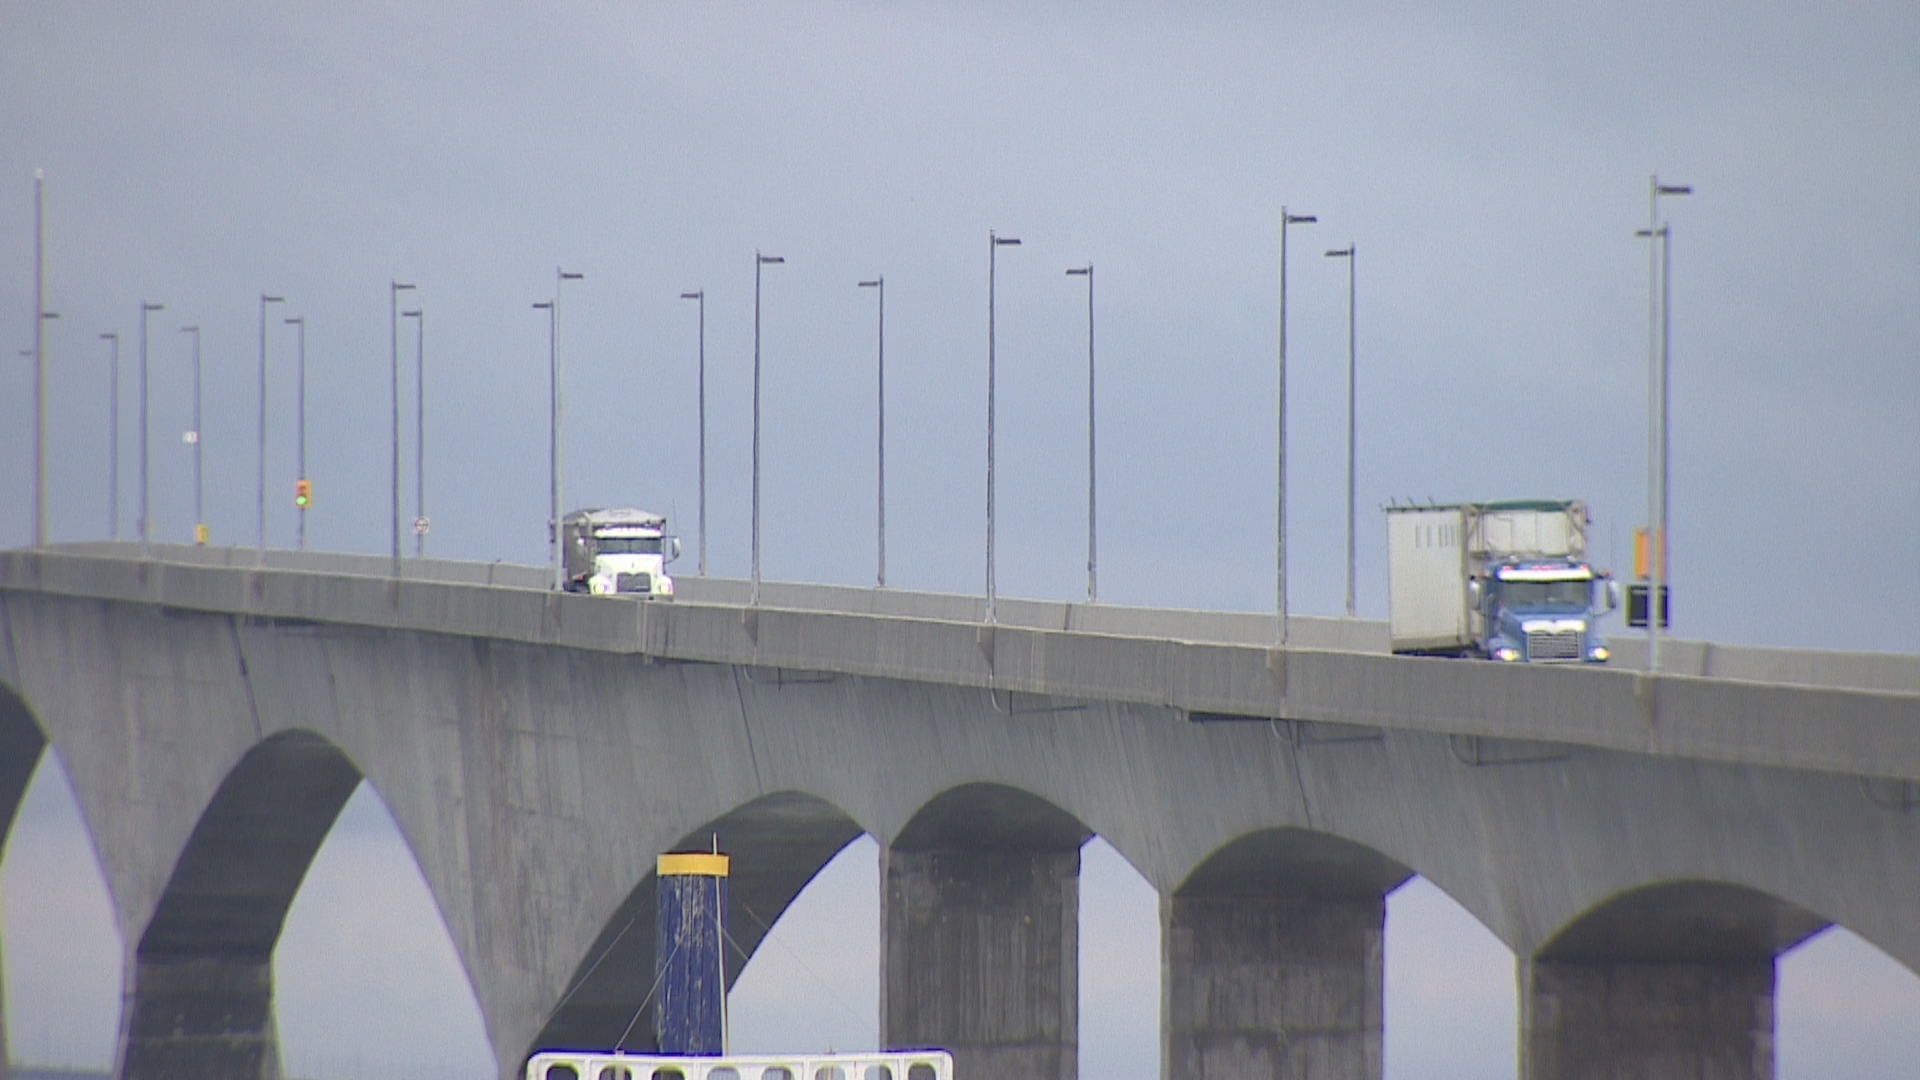 'We've got no choice — we live on an island,' Kimball Johnston says of using the Confederation Bridge. (Shane Hennessey/CBC)